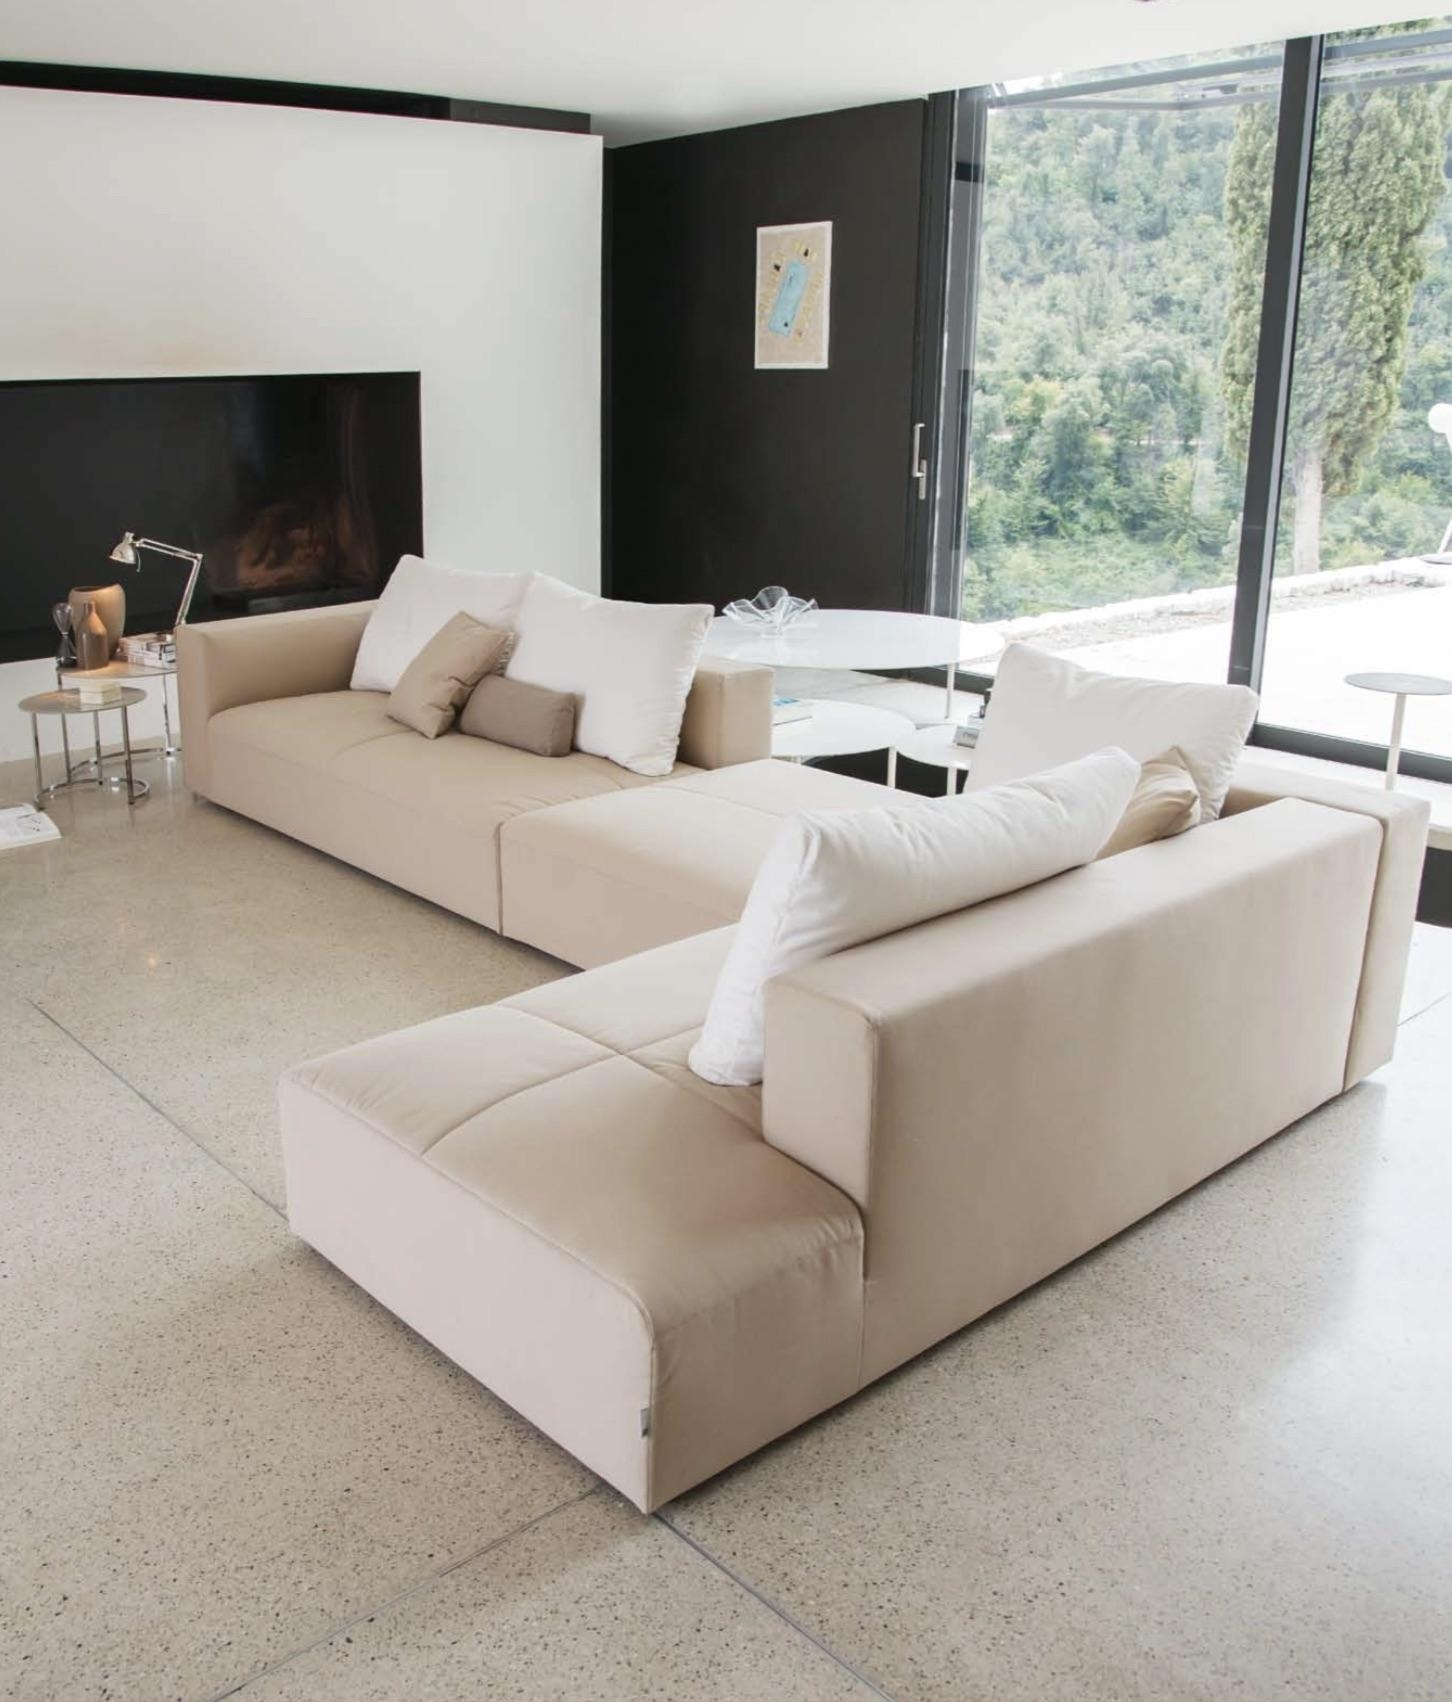 Down Feather Sectional Sofa Has One Of The Best Kind Of Other Is With Regard To Down Feather Sectional Sofa (View 2 of 15)